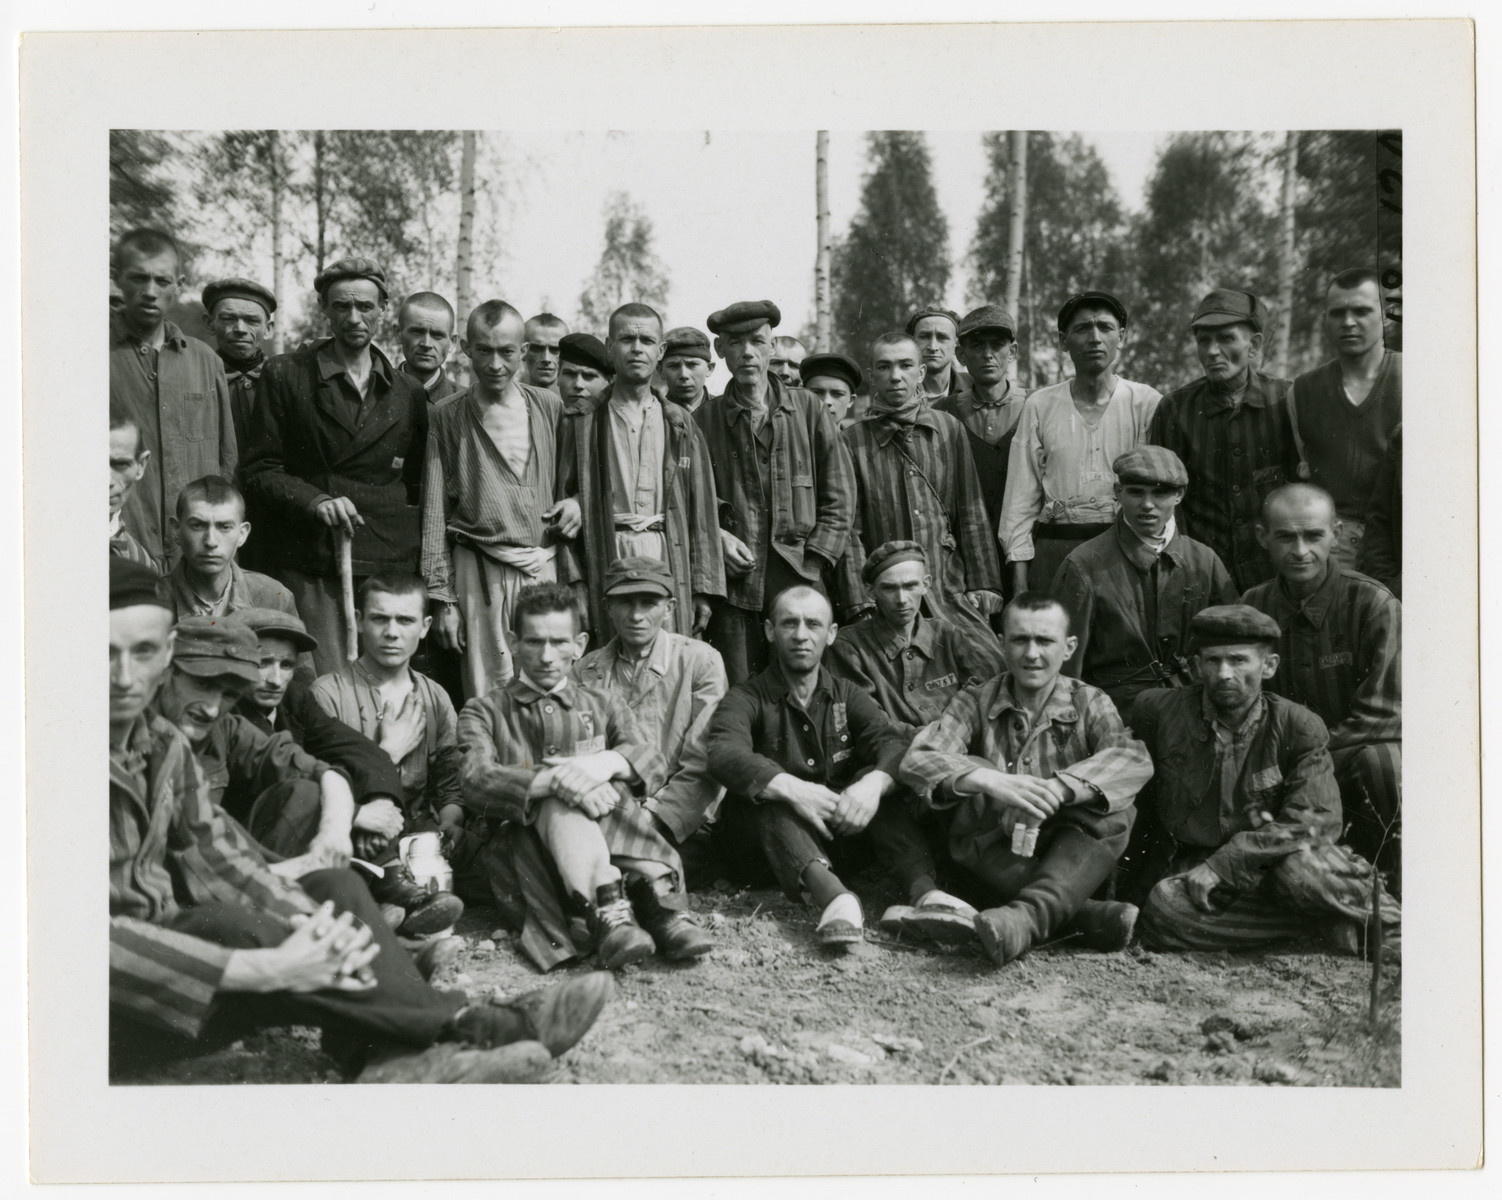 A large group of male survivors in the Langenstein-Zwieberge concentration camp gather outside.